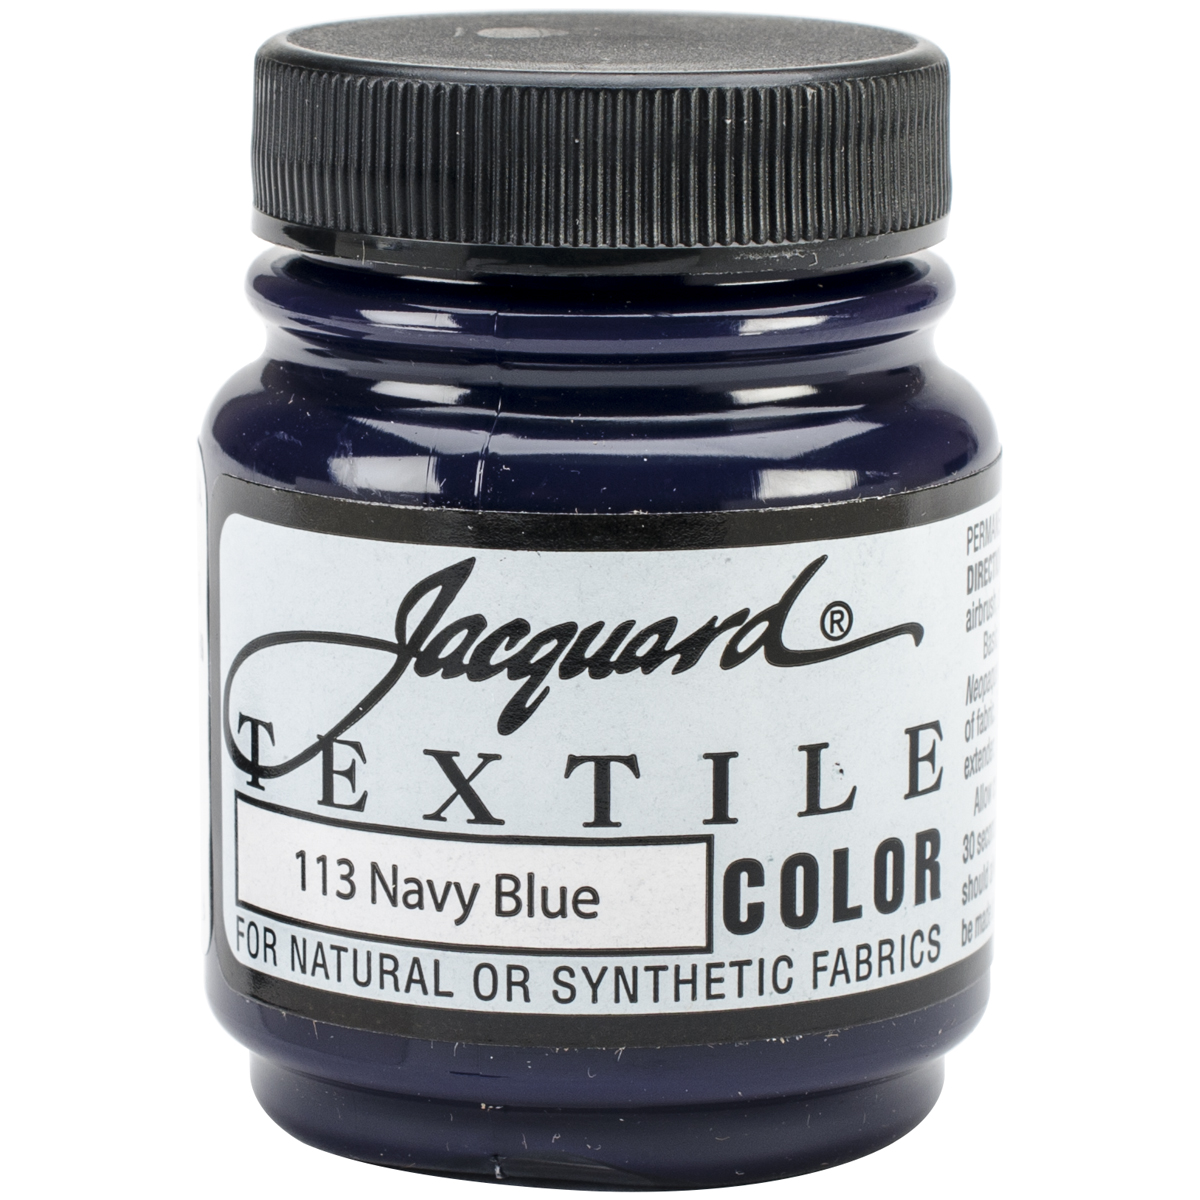 Jacquard Products Jacquard Textile Color Fabric Paint, 2.25-Ounce, Navy Blue Multi-Colored